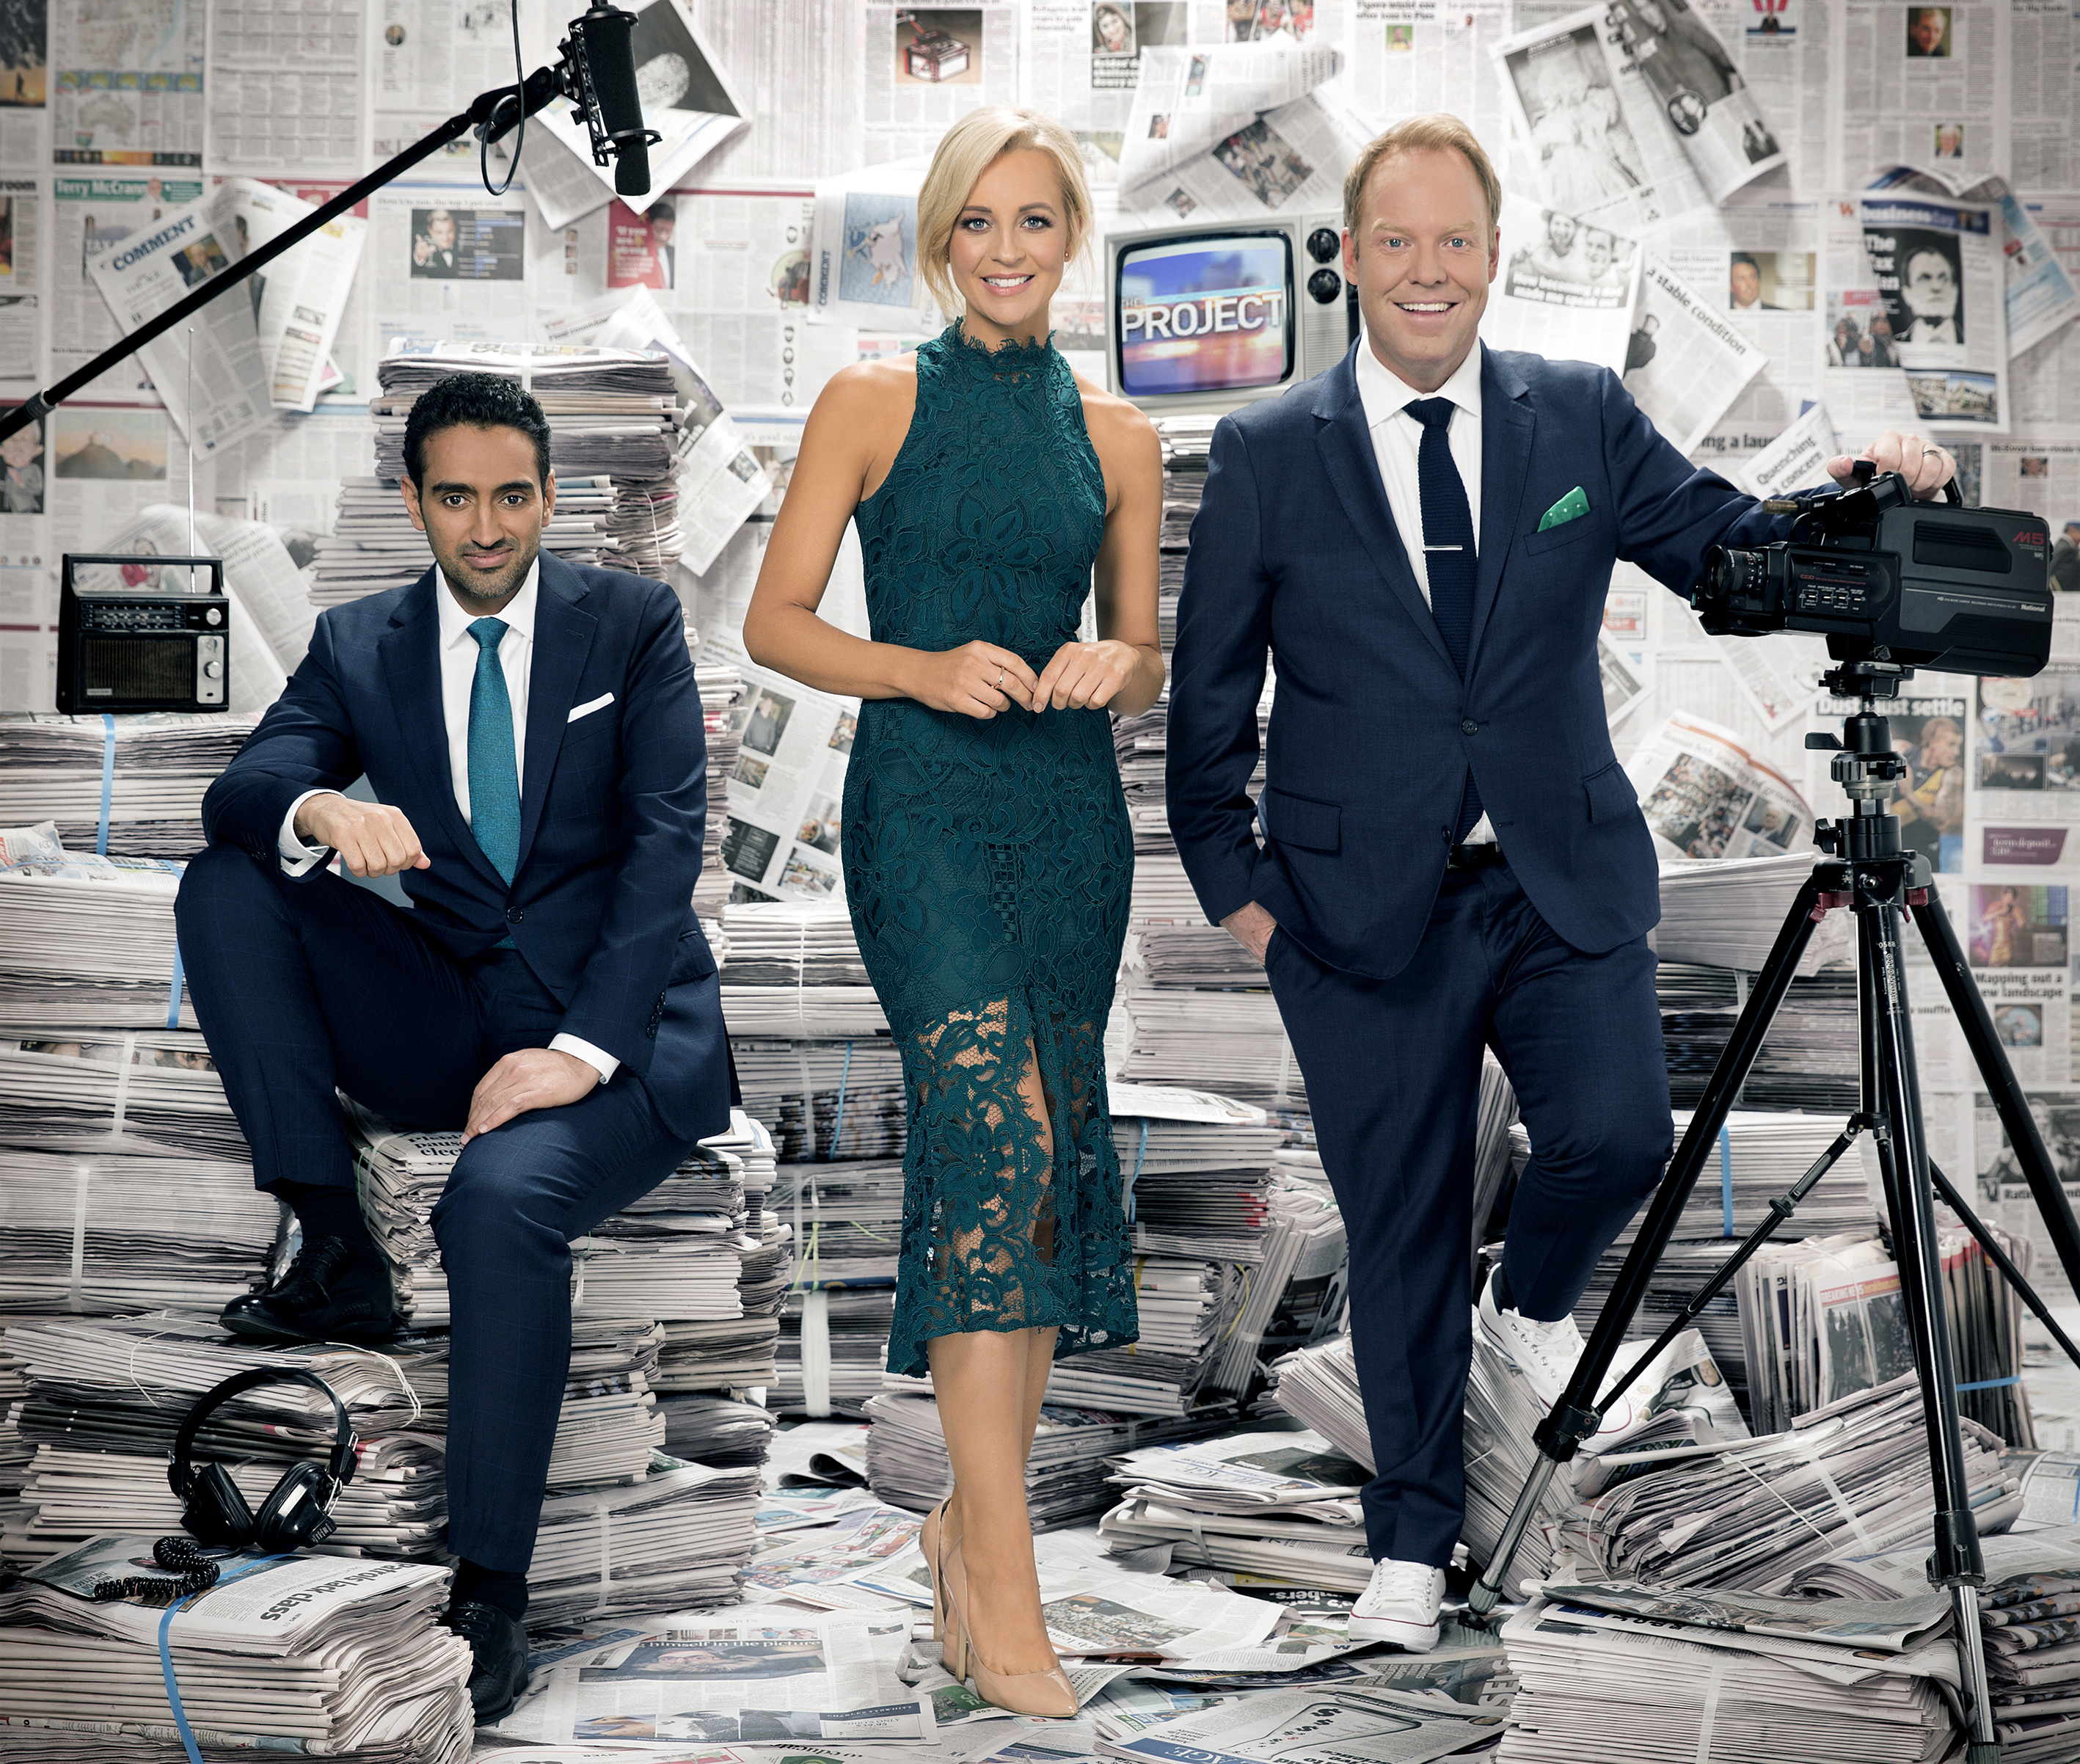 Network TEN Promo Images